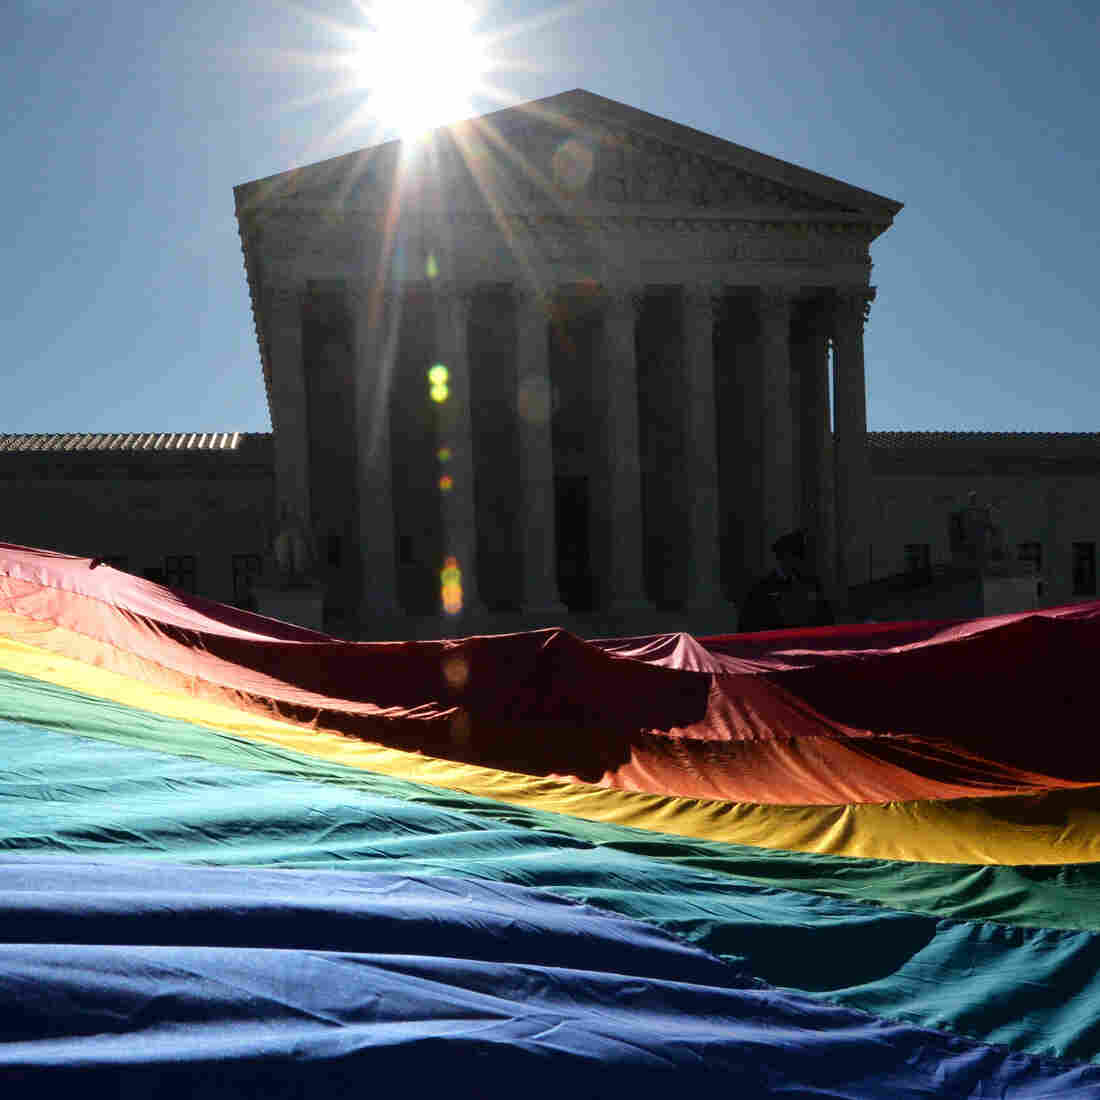 Supporters of same-sex marriages gather outside the U.S. Supreme Court on April 28, in Washington, D.C.